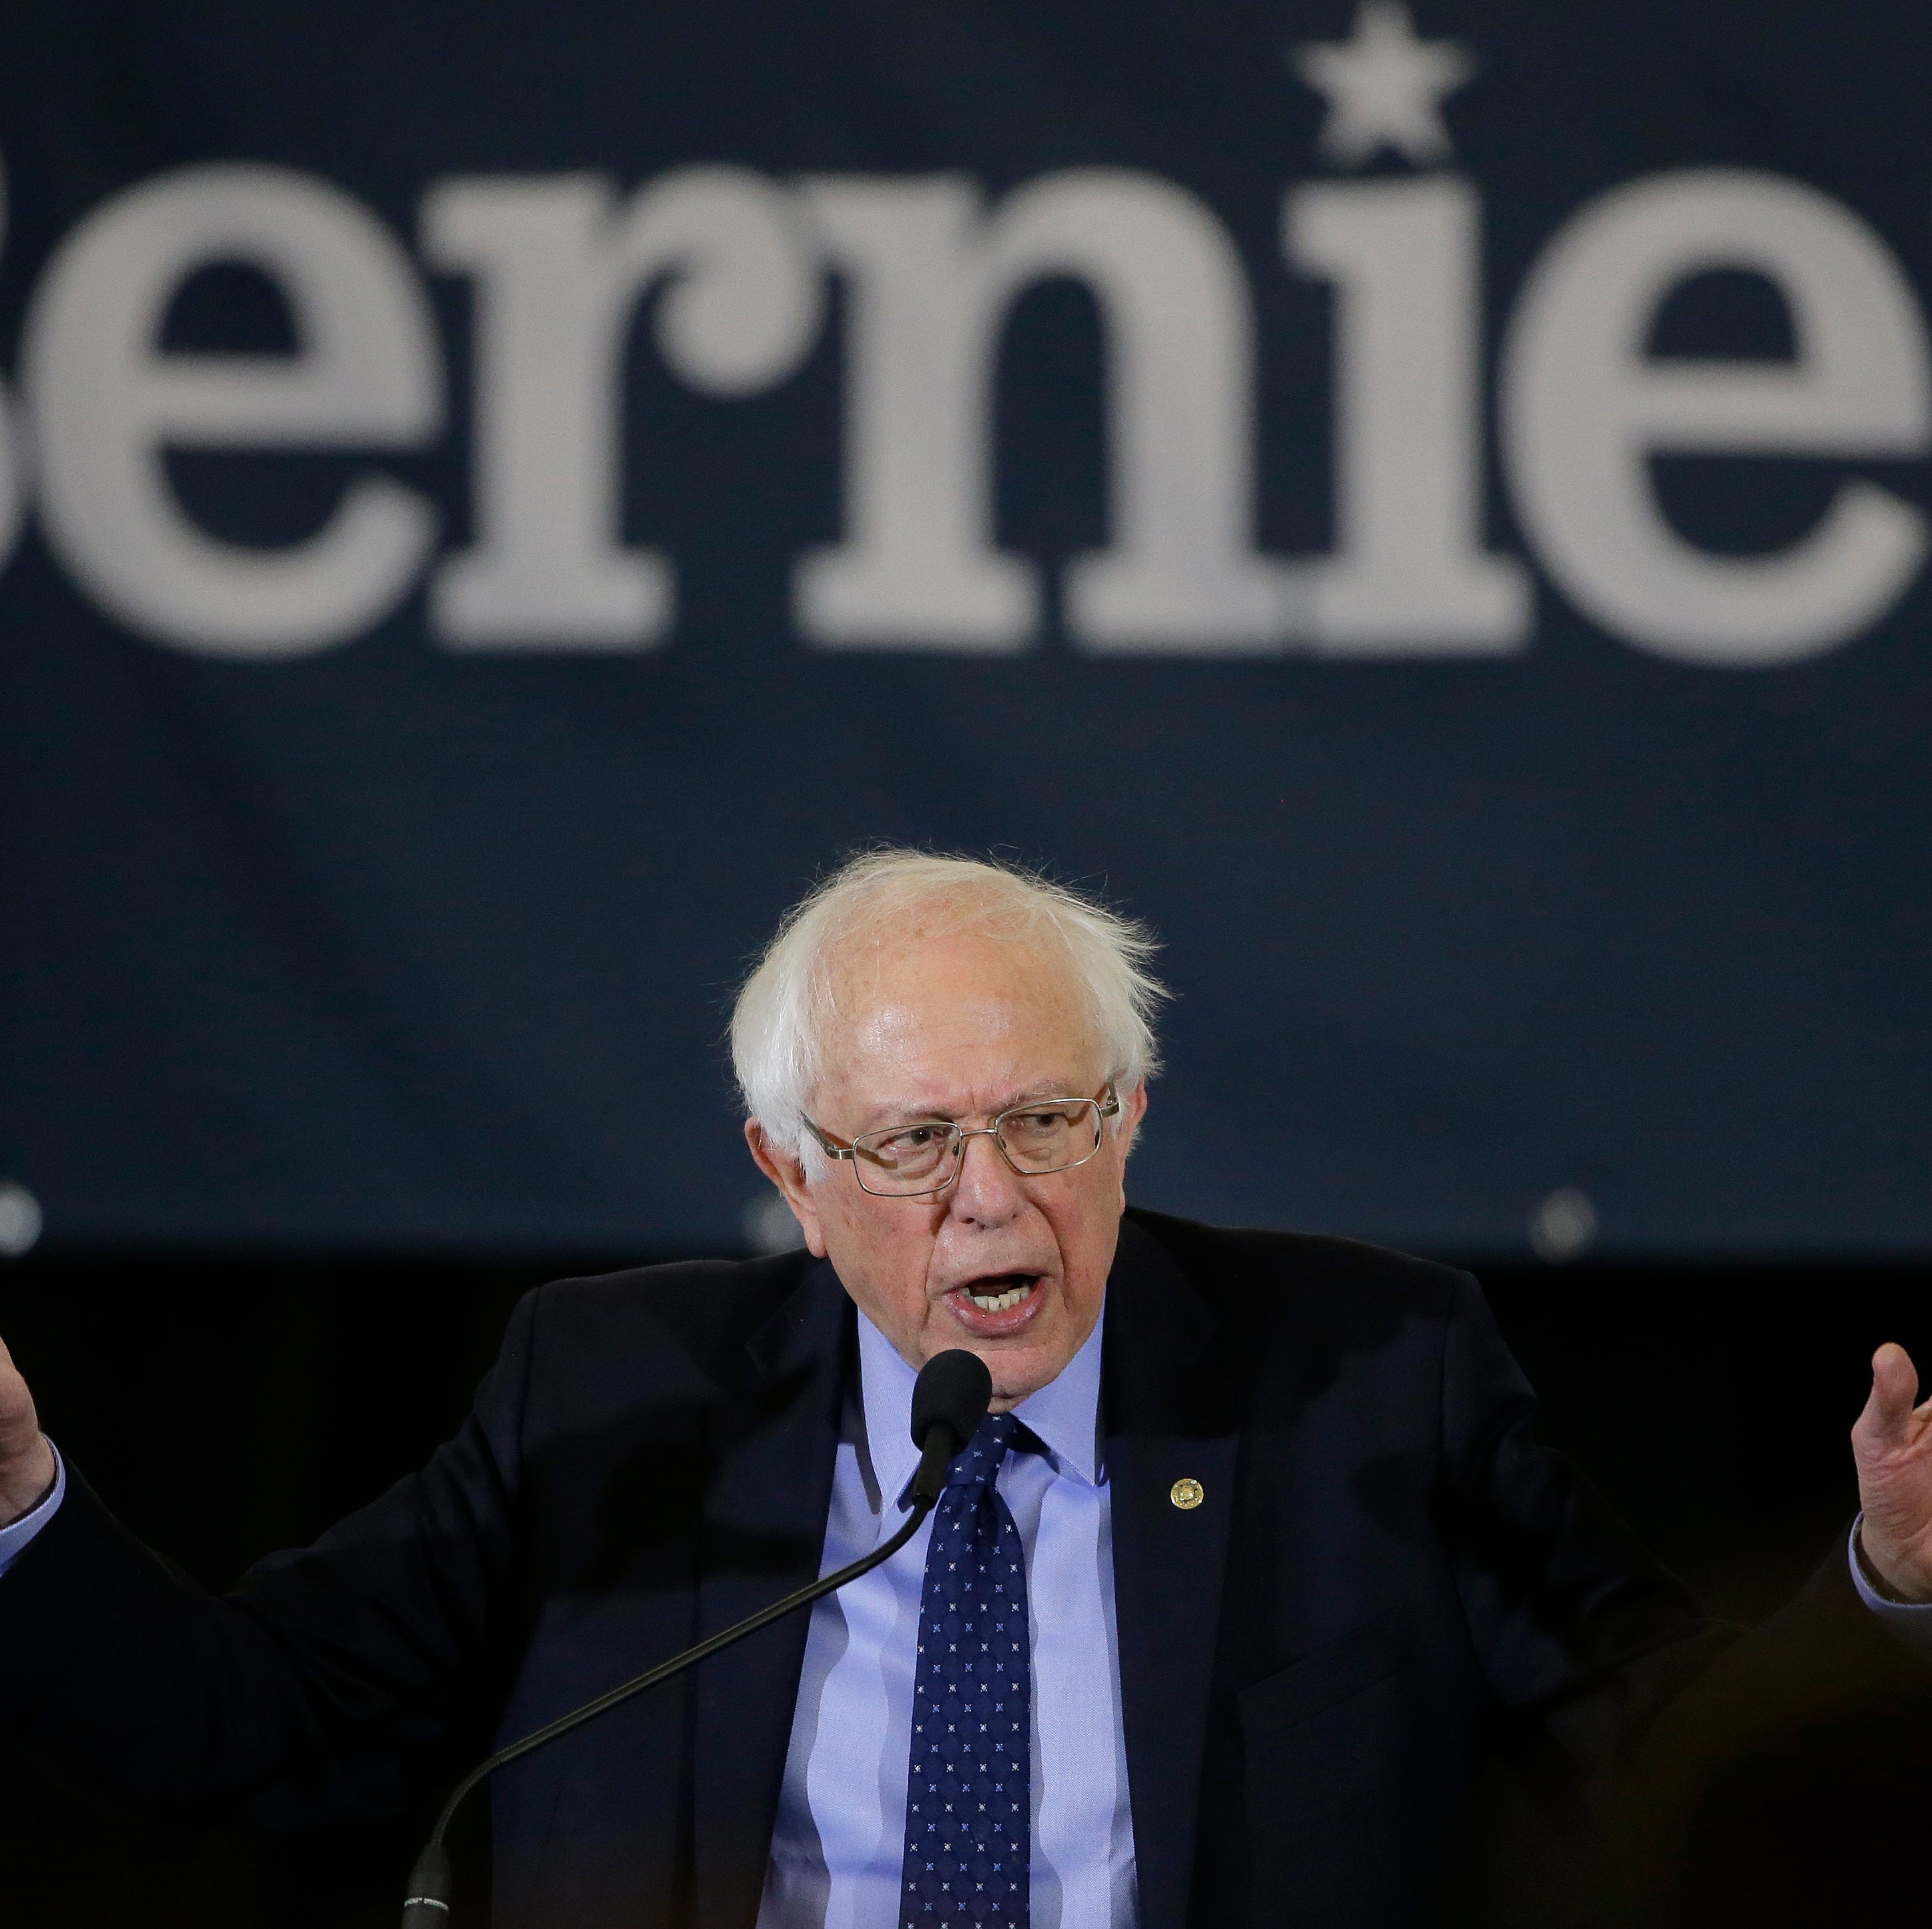 VT Insights: In New Hampshire, Bernie Sanders sets up Trump as opposite of democracy